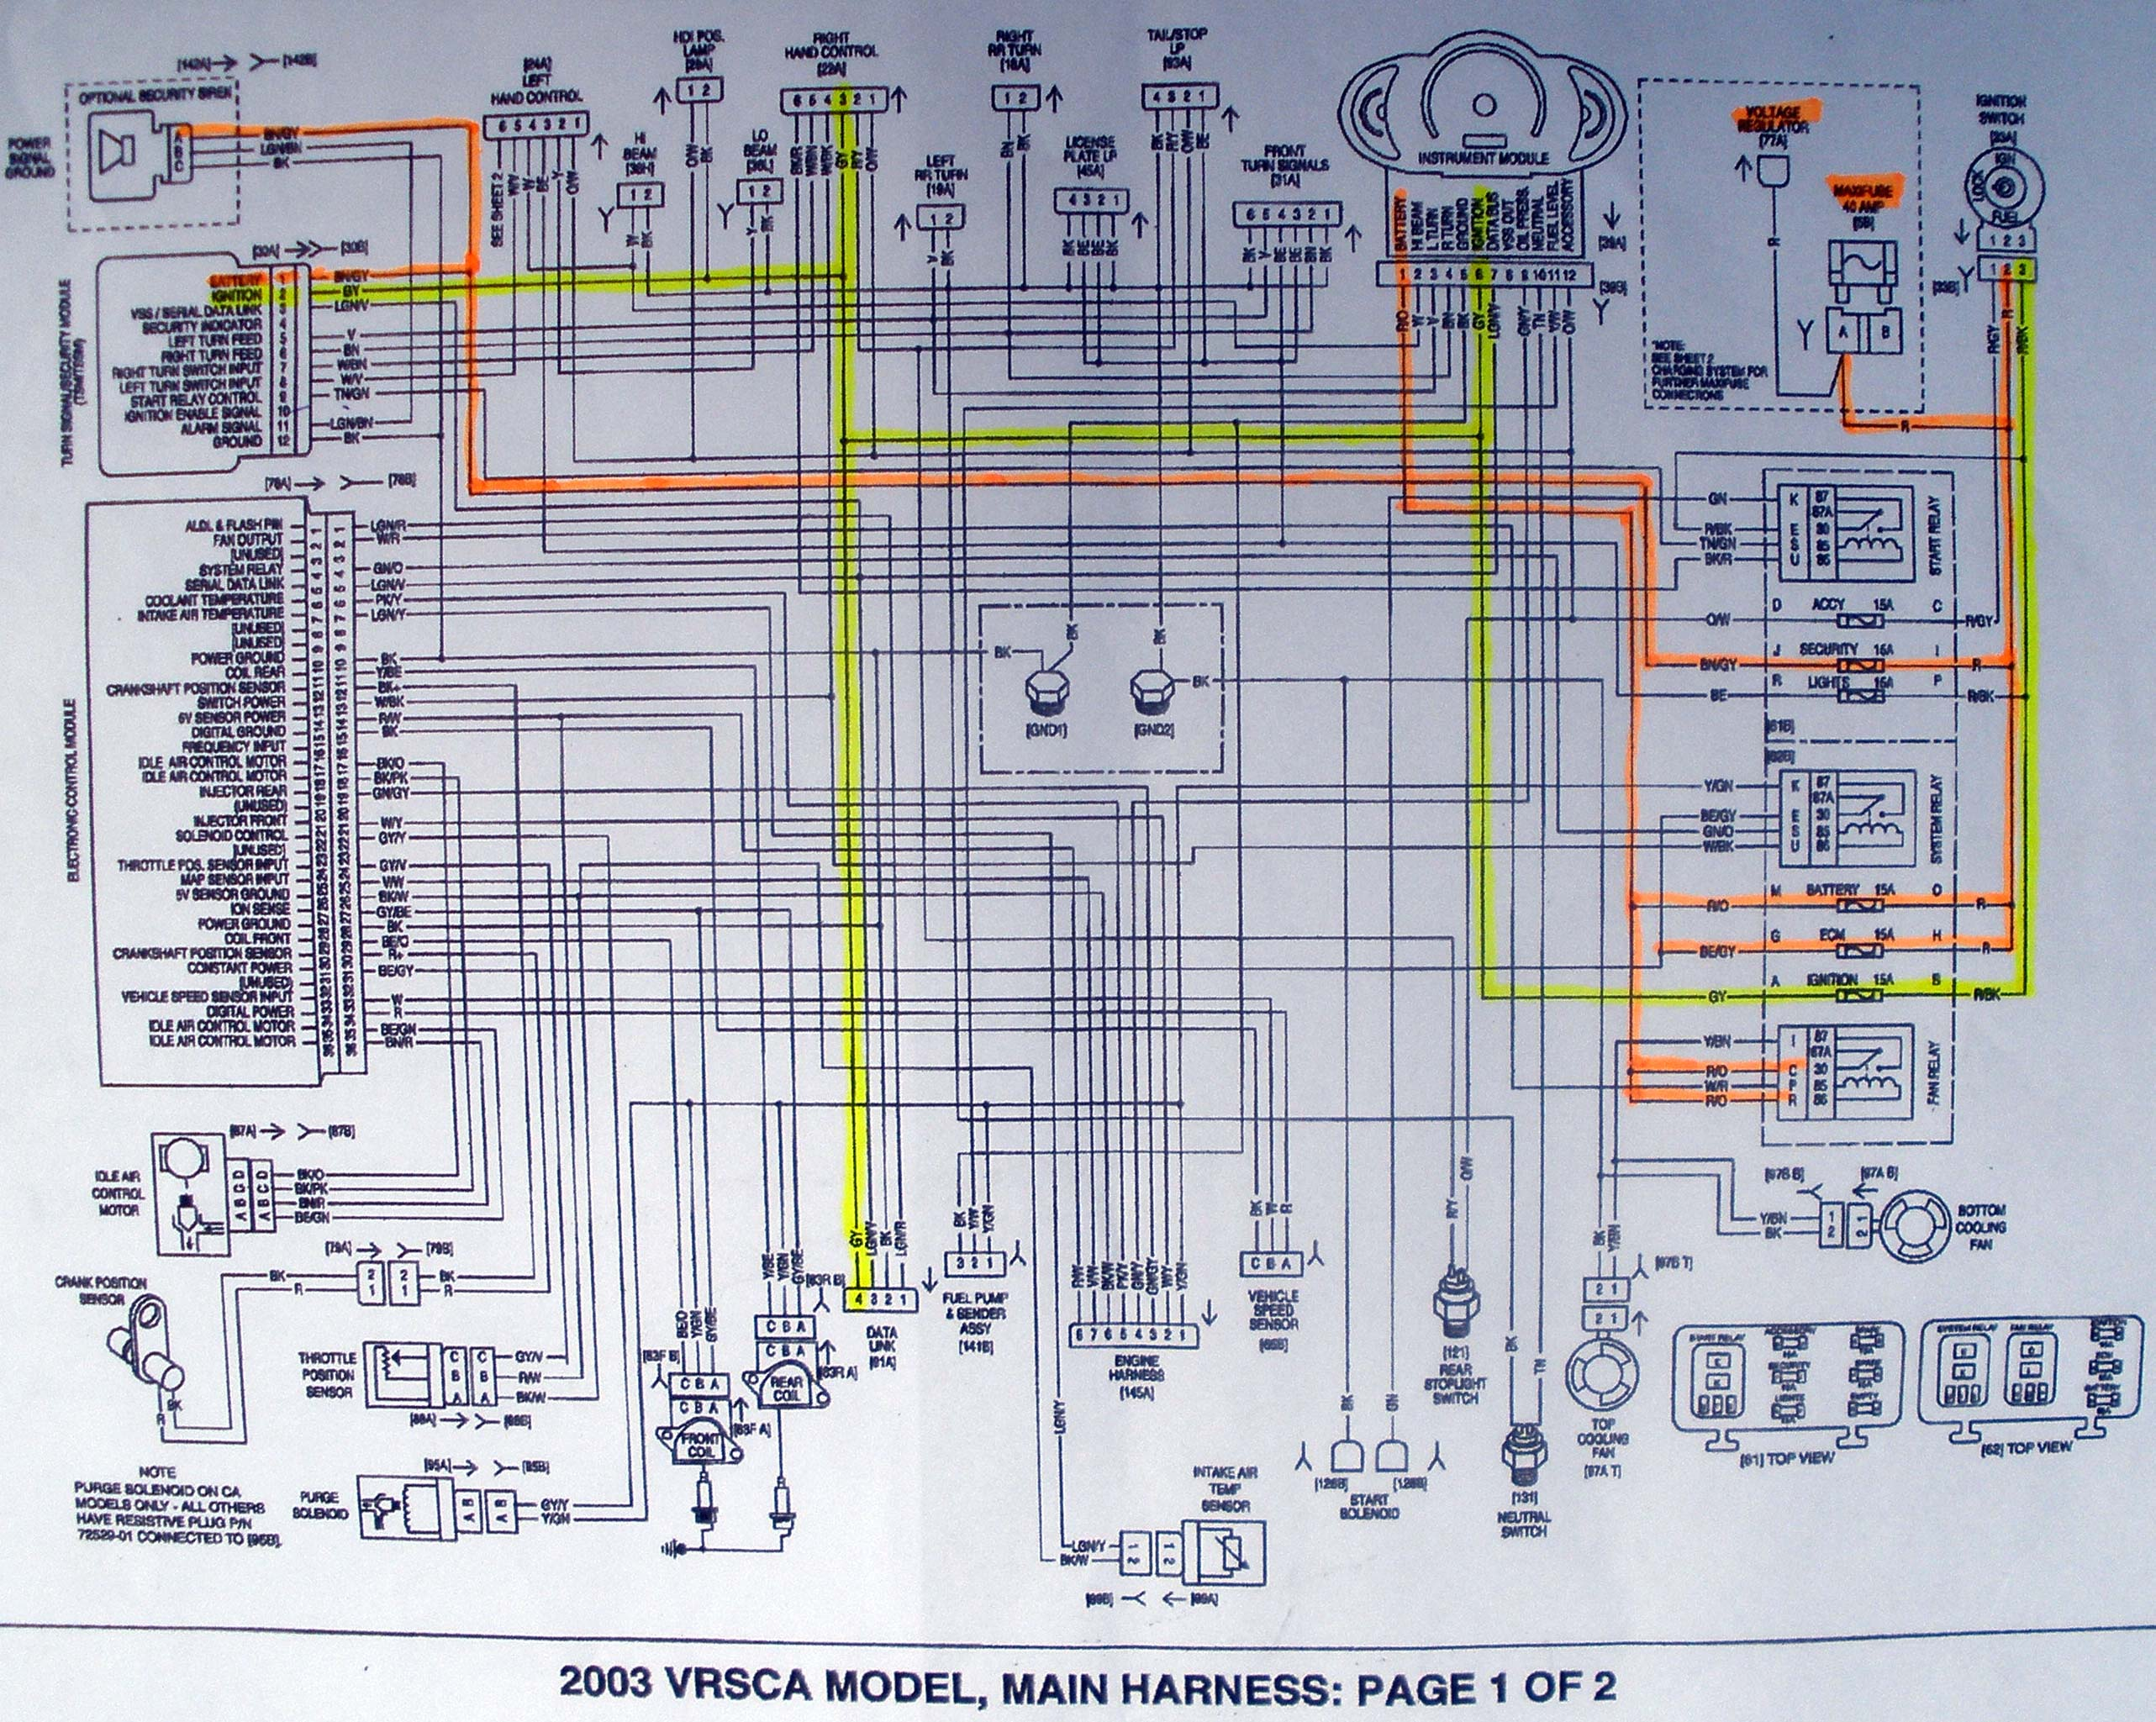 Harley Davidson Wiring Diagram on harley controls wiring diagram, 2008 harley wiring diagram, 2009 harley davidson ford, 2009 harley davidson tires, harley-davidson coil wiring diagram, harley-davidson wiring harness diagram, harley-davidson radio wiring diagram, 2007 harley davidson wiring diagram, harley davidson chopper wiring diagram, 1999 harley softail wiring diagram, 2009 harley davidson exhaust, harley-davidson softail wiring diagram, 1990 harley wiring diagram, harley handlebar wiring diagram, harley brake light wiring diagram, harley flh wiring harness diagram, 2006 harley davidson wiring diagram, harley ignition switch wiring diagram, 94 harley softail wiring diagram,